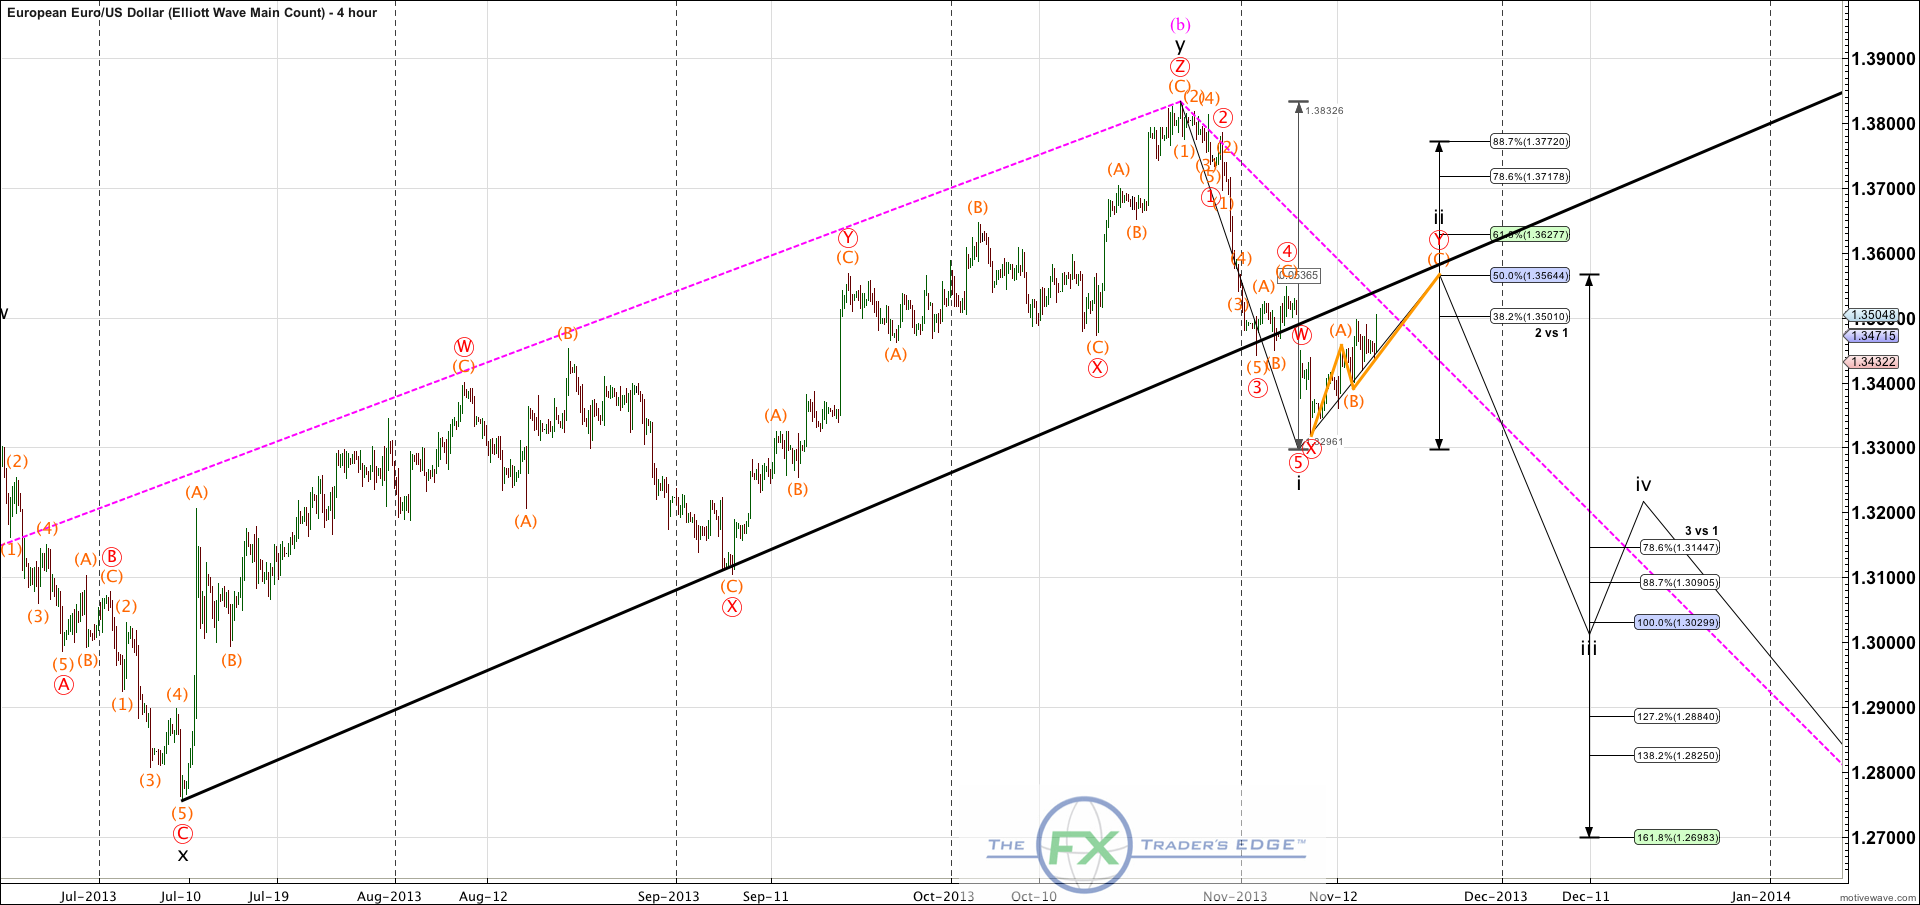 EURUSD-Elliott-Wave-Main-Count-Nov-16-0941-AM-4-hour